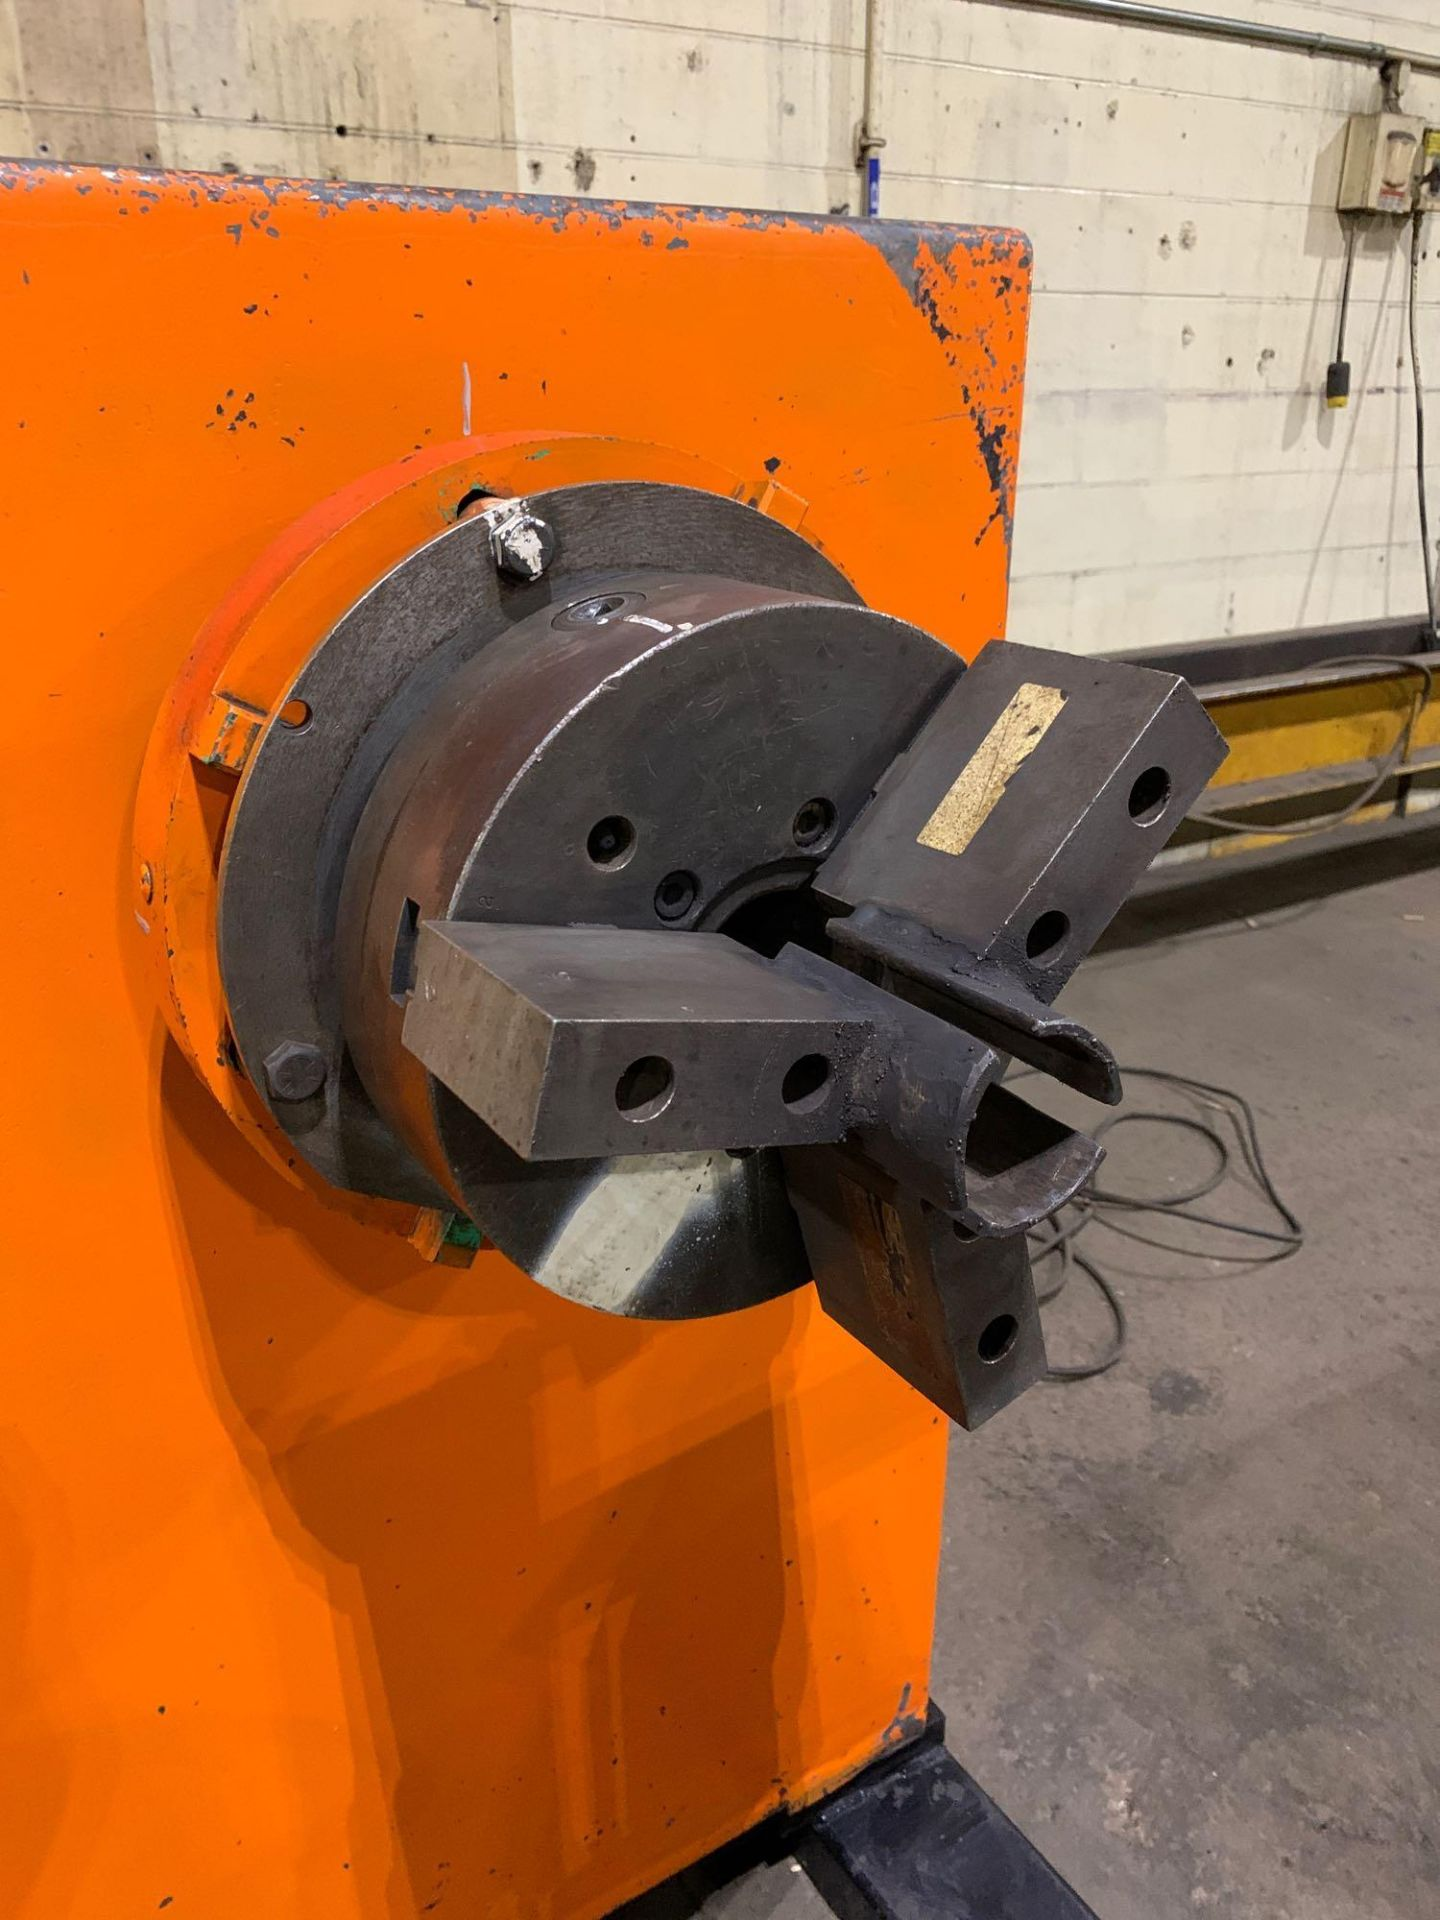 Jetline Welding Positioner Model CU5-216 Serial Number: 07625 Pipe Weld Positioner with Tail Stock I - Image 12 of 15